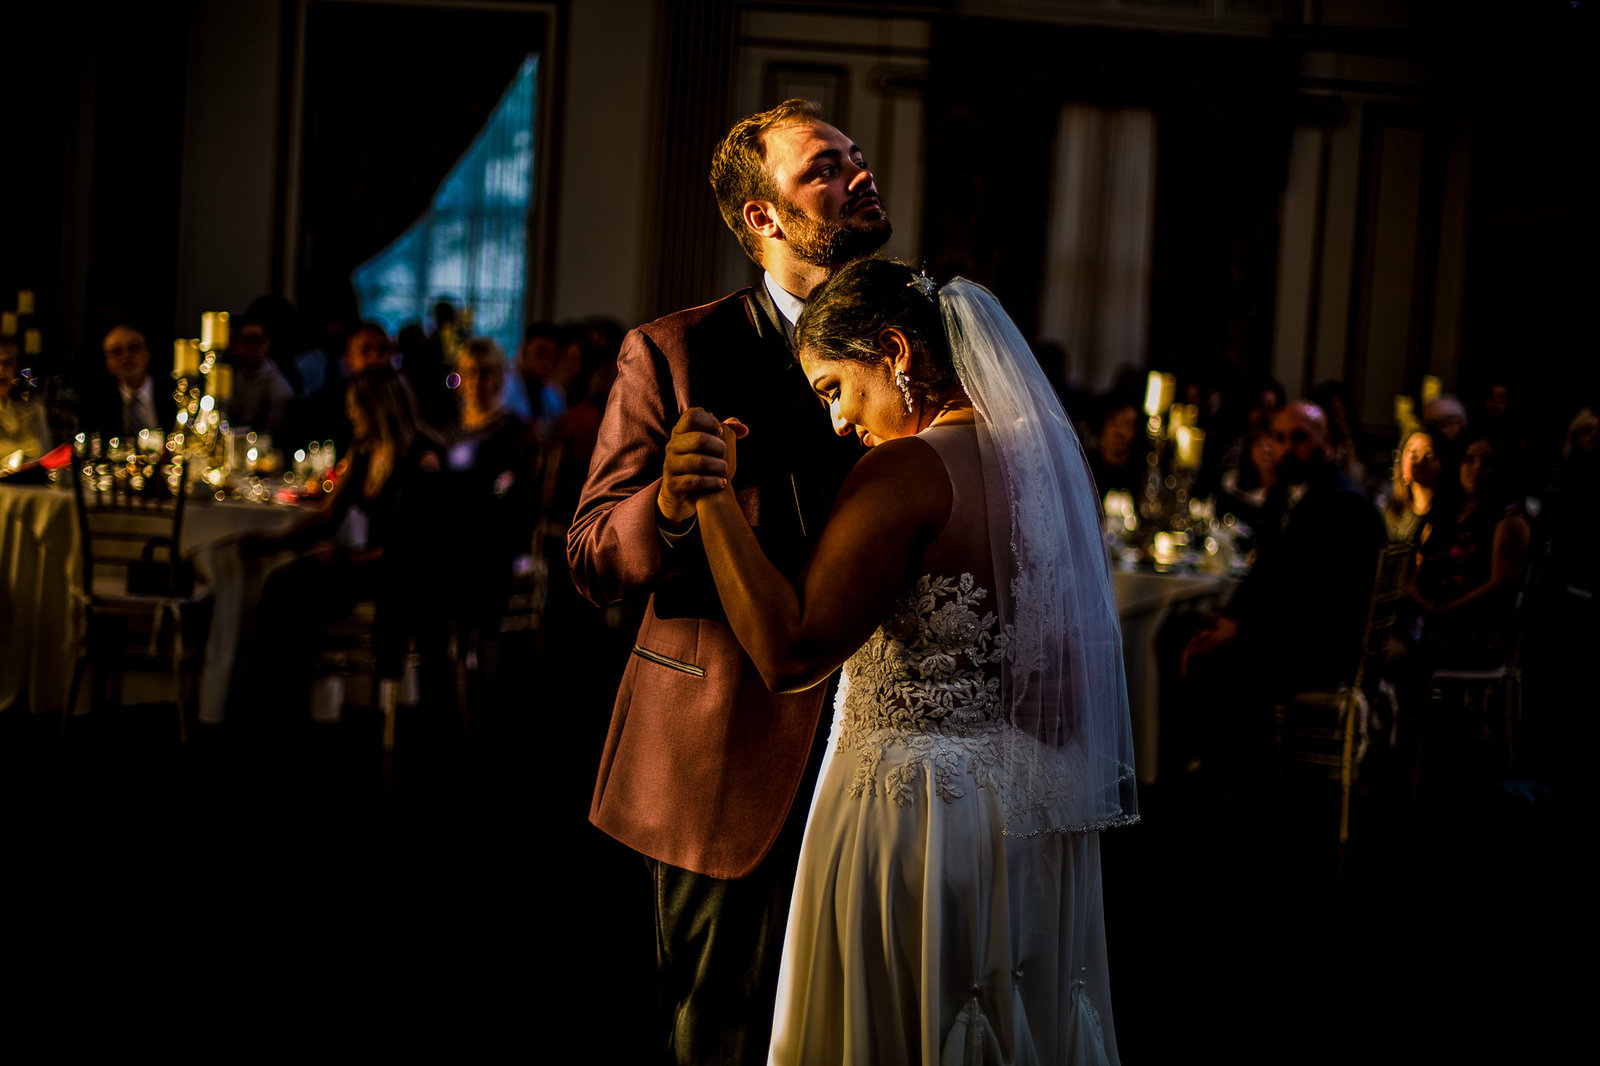 Bride and groom dance while framed in light of setting sun at the George Washington Hotel